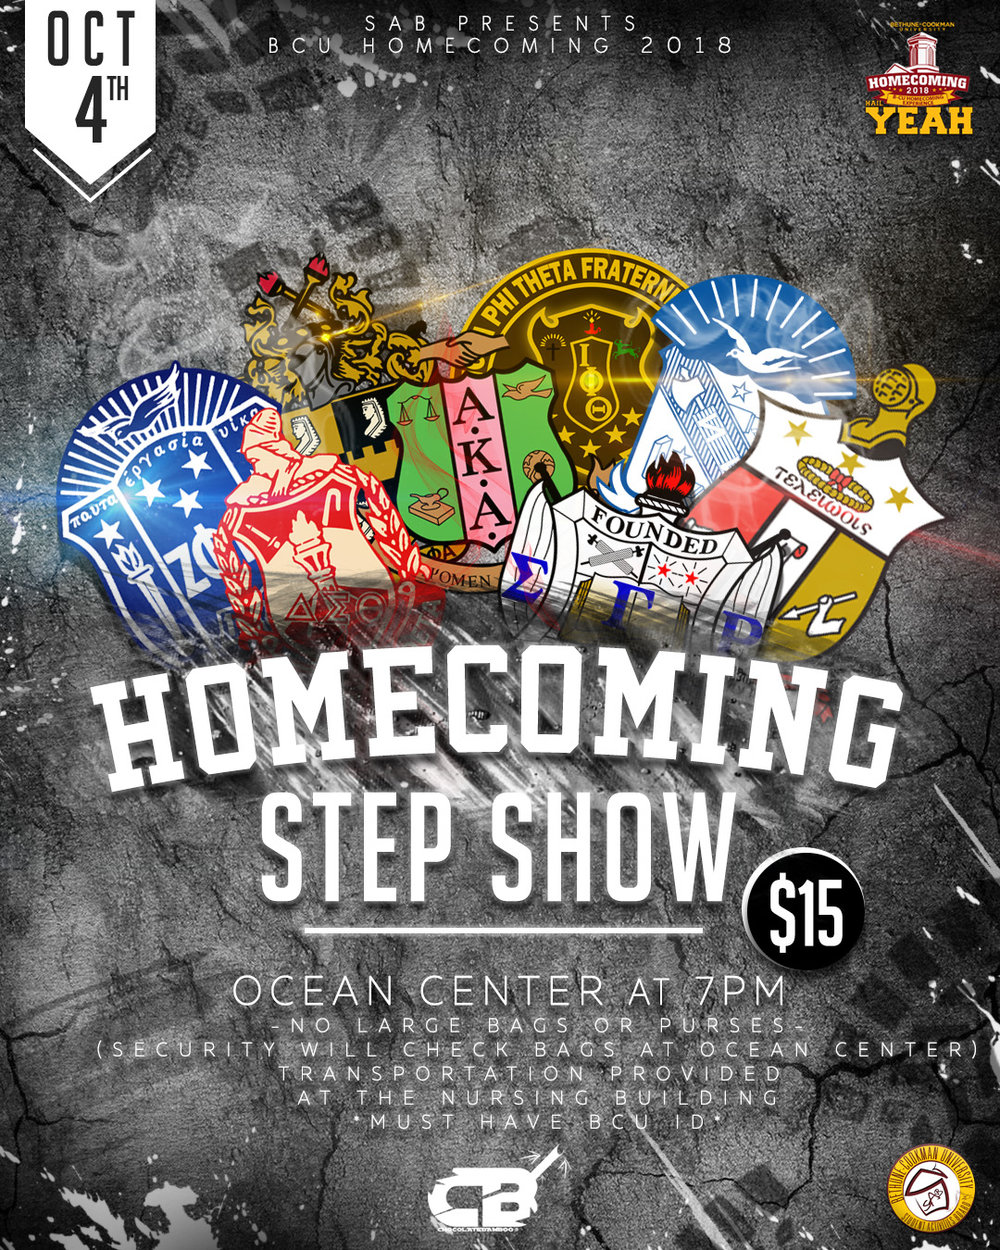 Stepshow Flyer.jpg